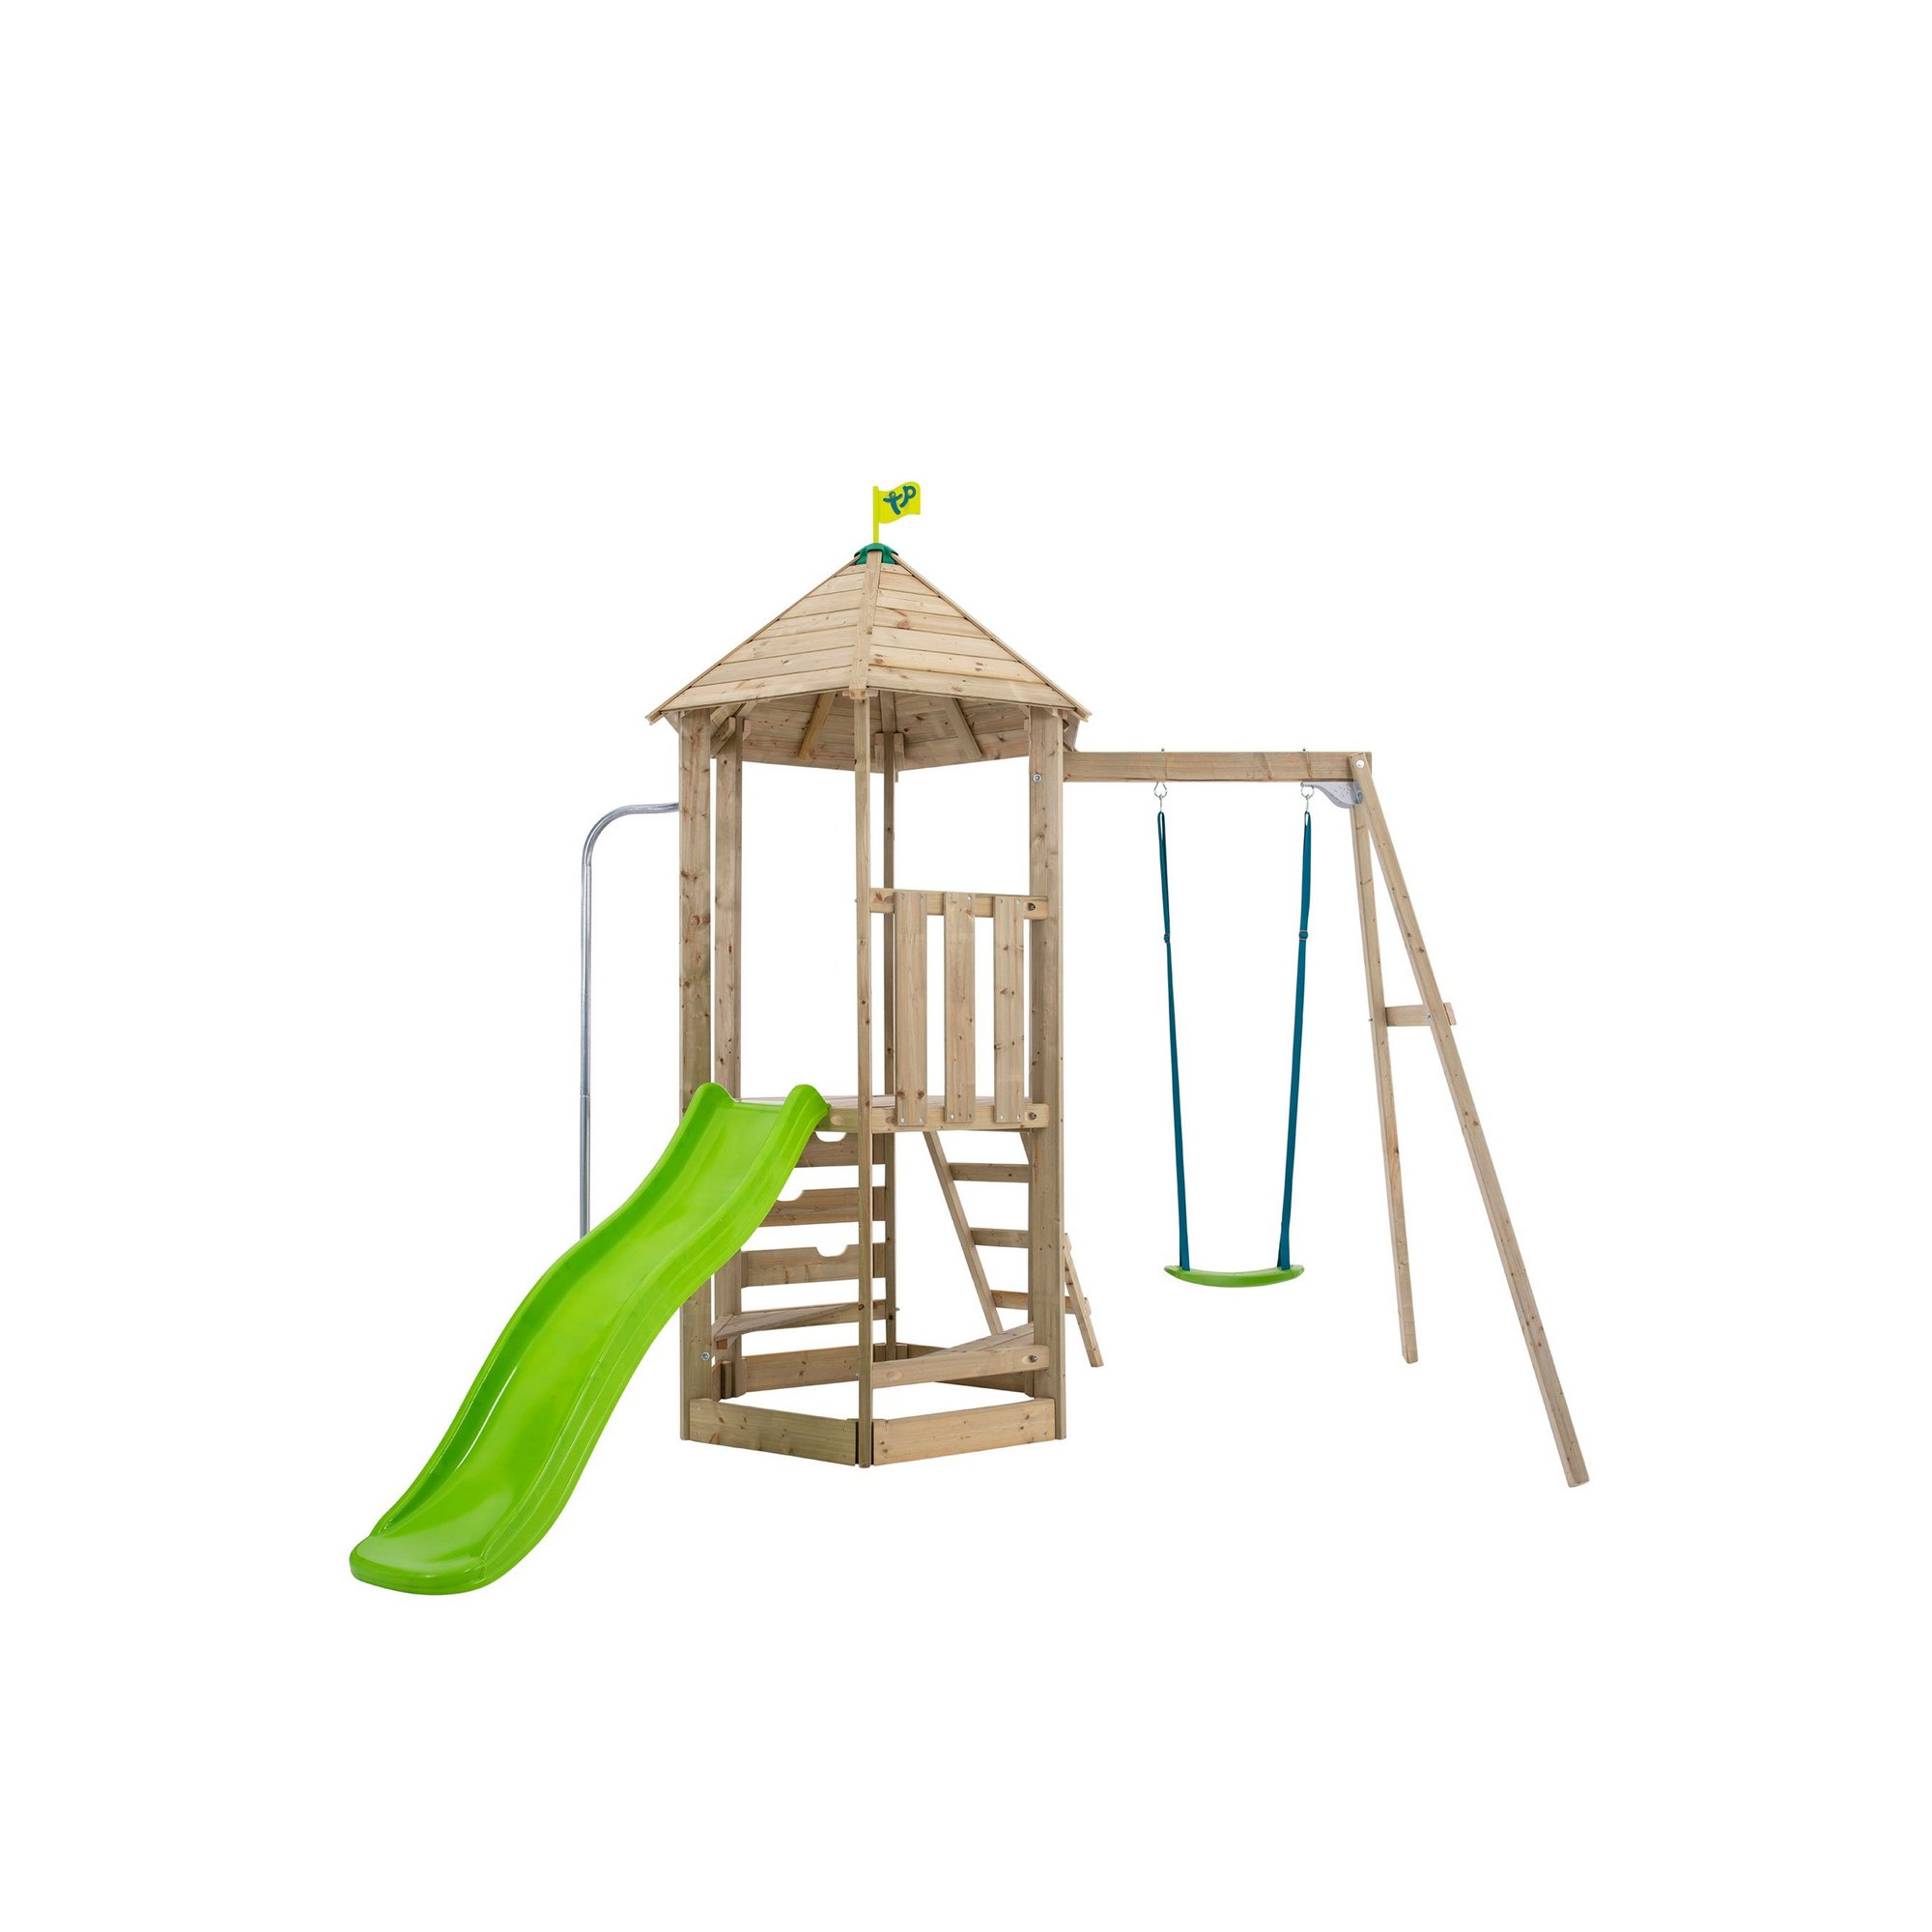 Image of TP Toys Castlewood Tower with Single Swing Arm and Metal Bracket